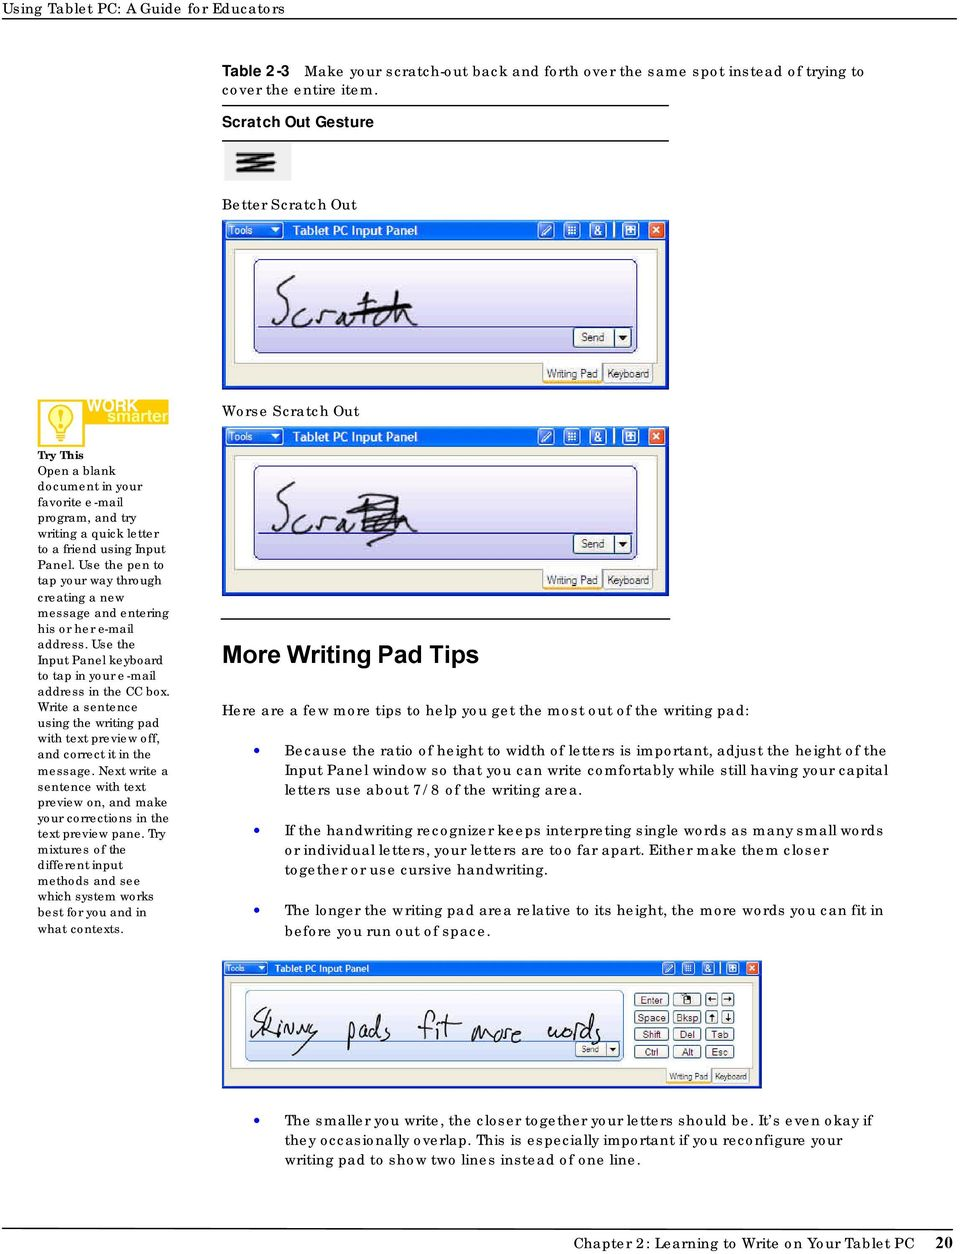 Use the pen to tap your way through creating a new message and entering his or her e-mail address. Use the Input Panel keyboard to tap in your e-mail address in the CC box.